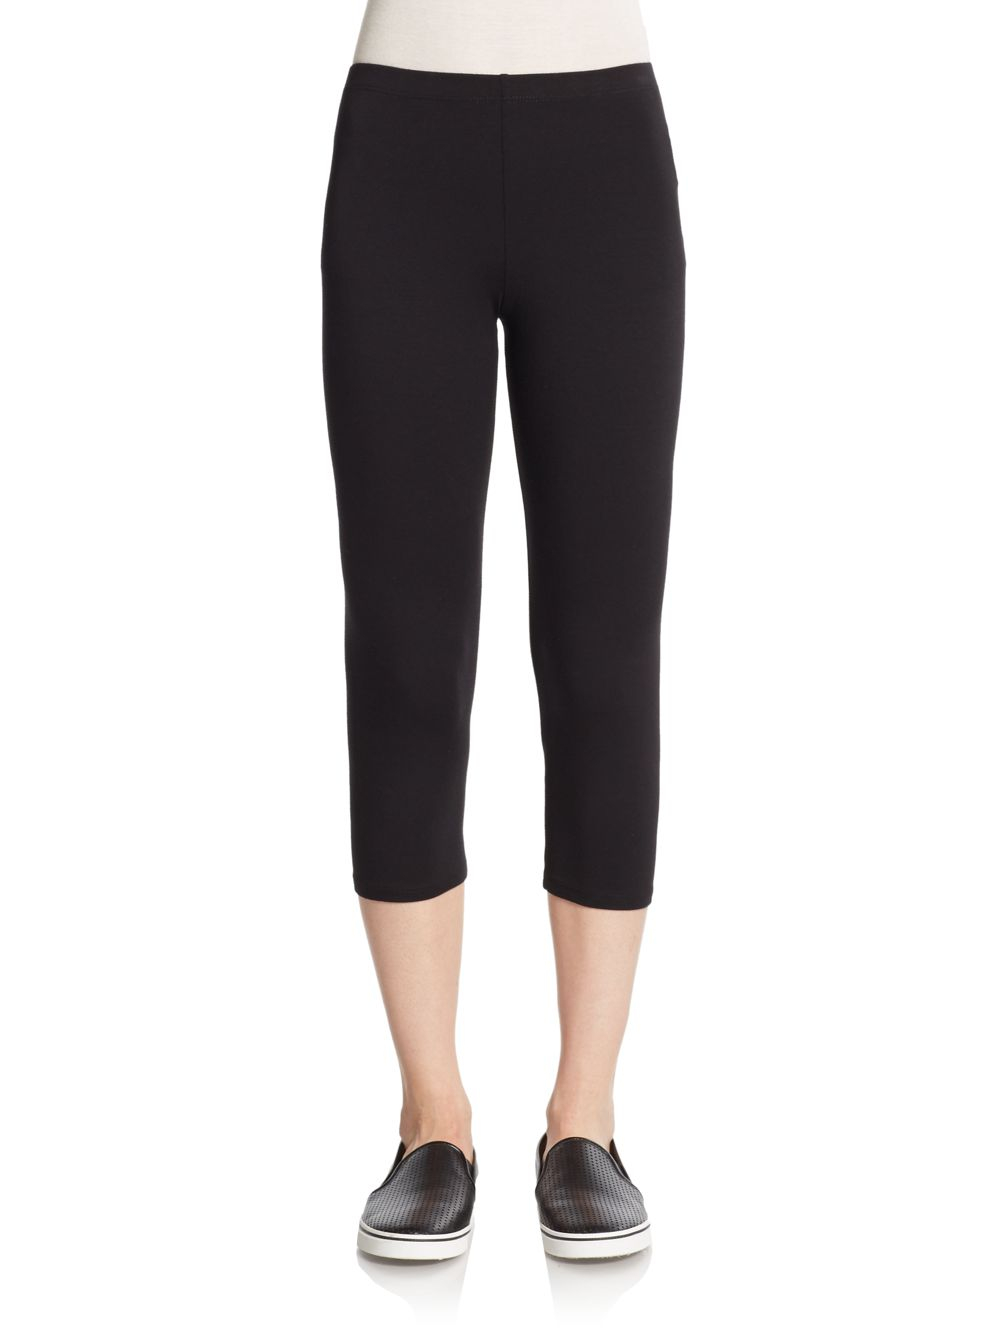 Wholesale Leggings & jeggings,yoga pants and sport pants for qrqceh.tk yoga sport pants leggings wholesale from $qrqceh.tk $